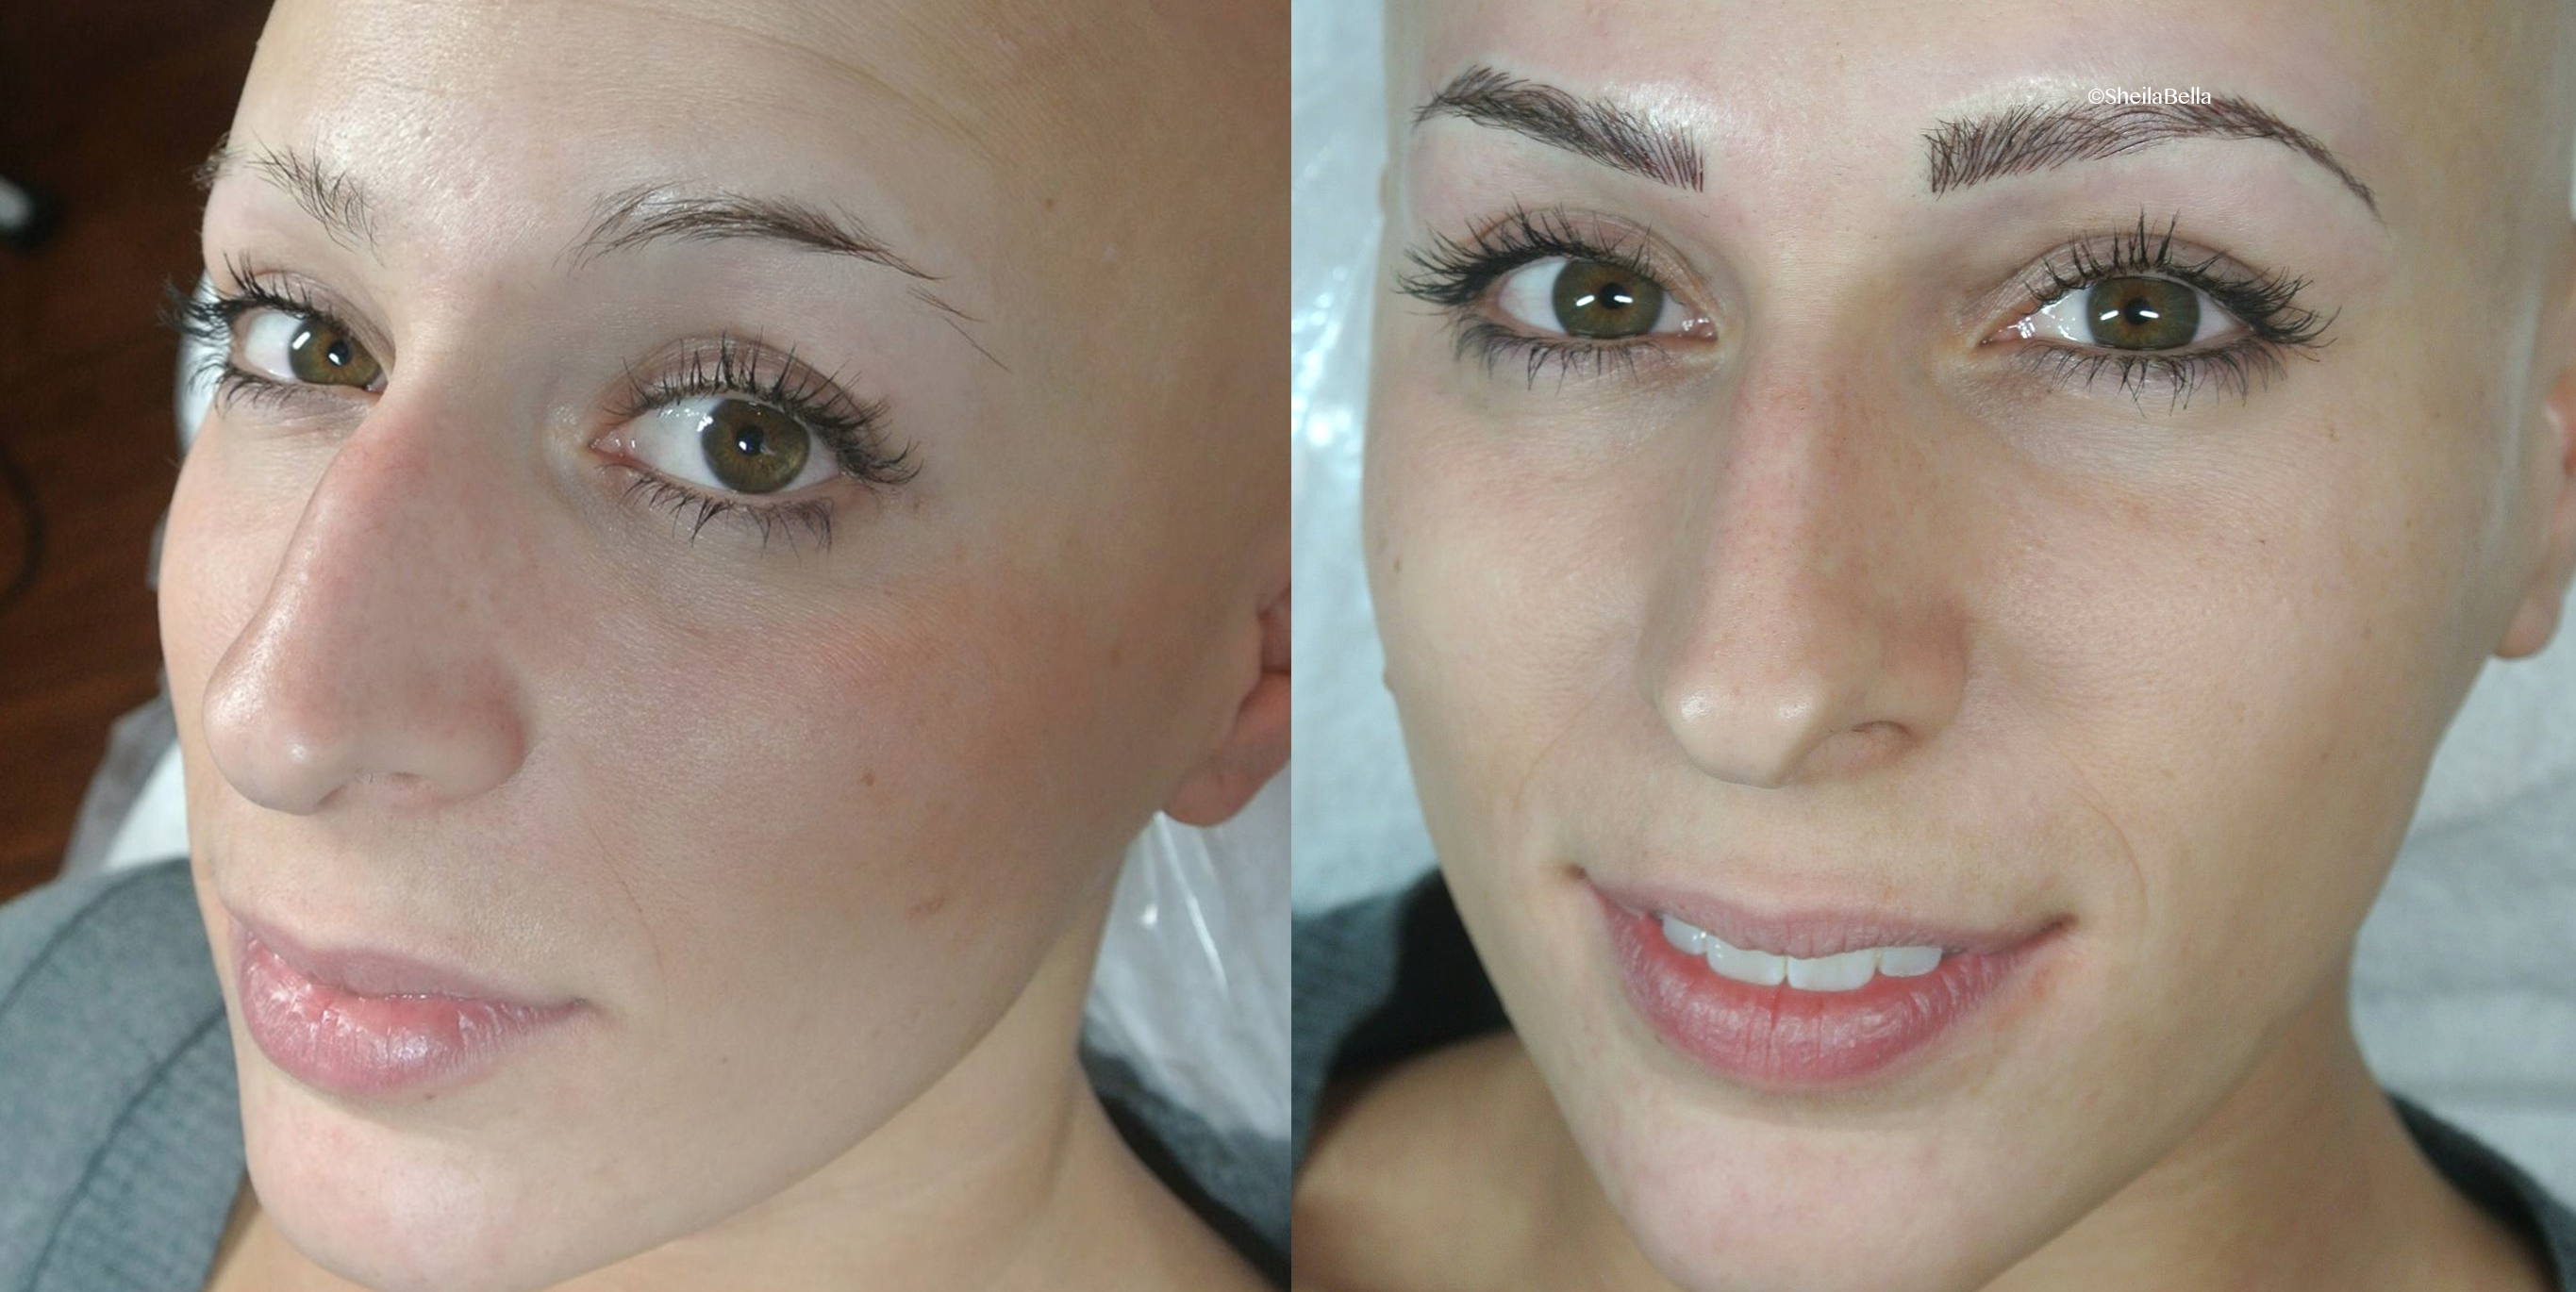 alopecia sheila bella permanent makeup and microblading